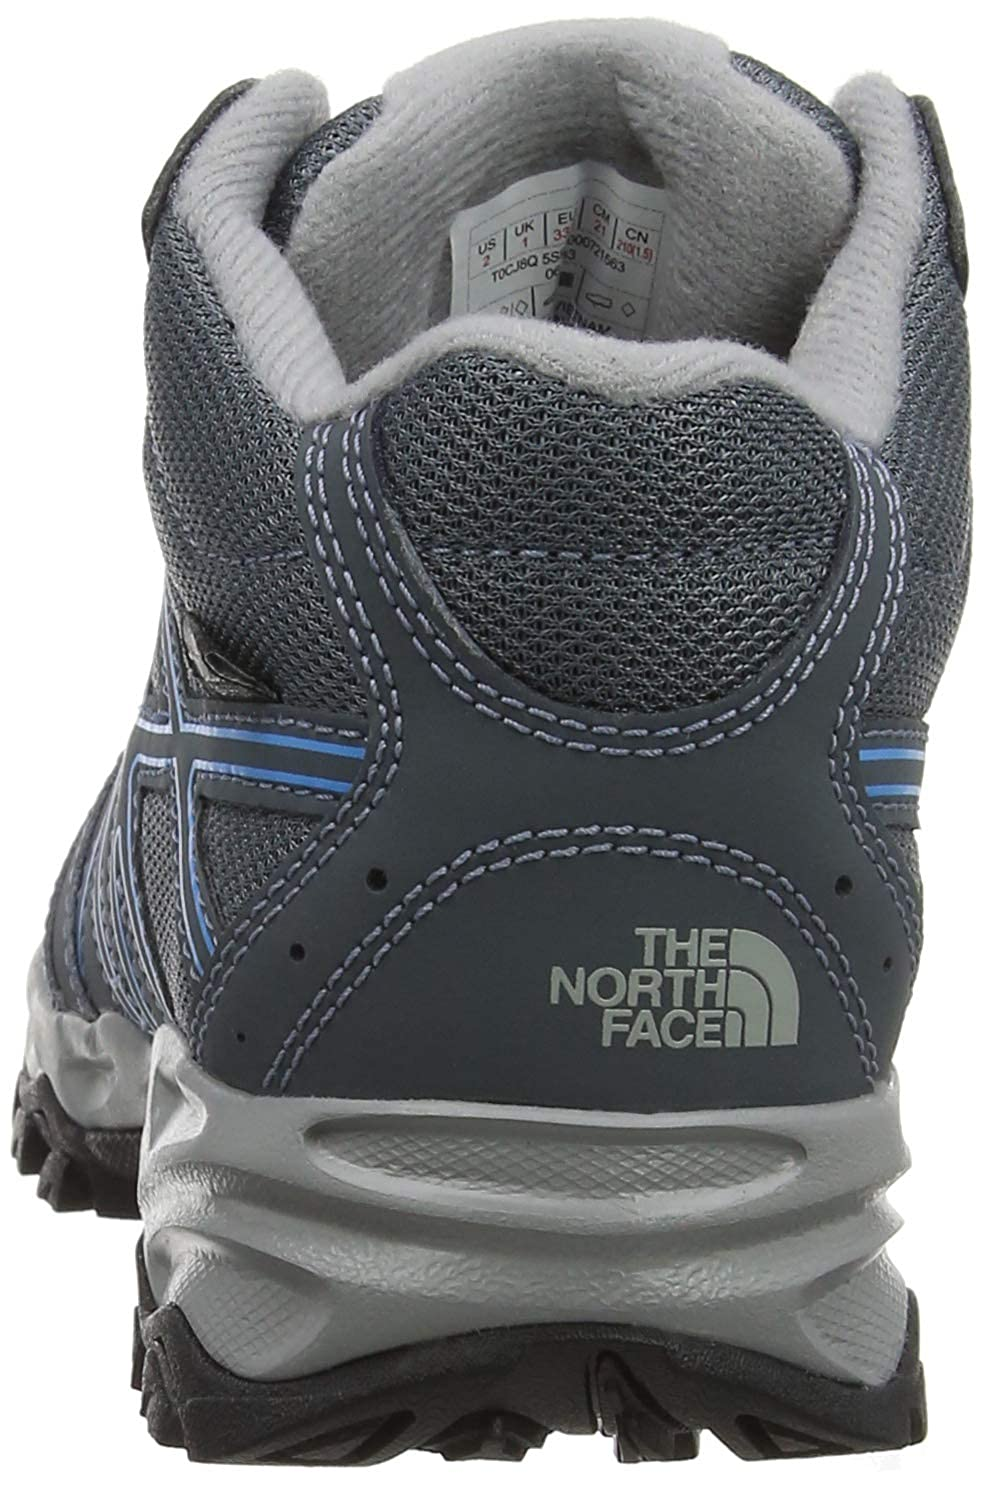 The North Face Hedgehog Hiker Mid Waterproof ce78920bf62